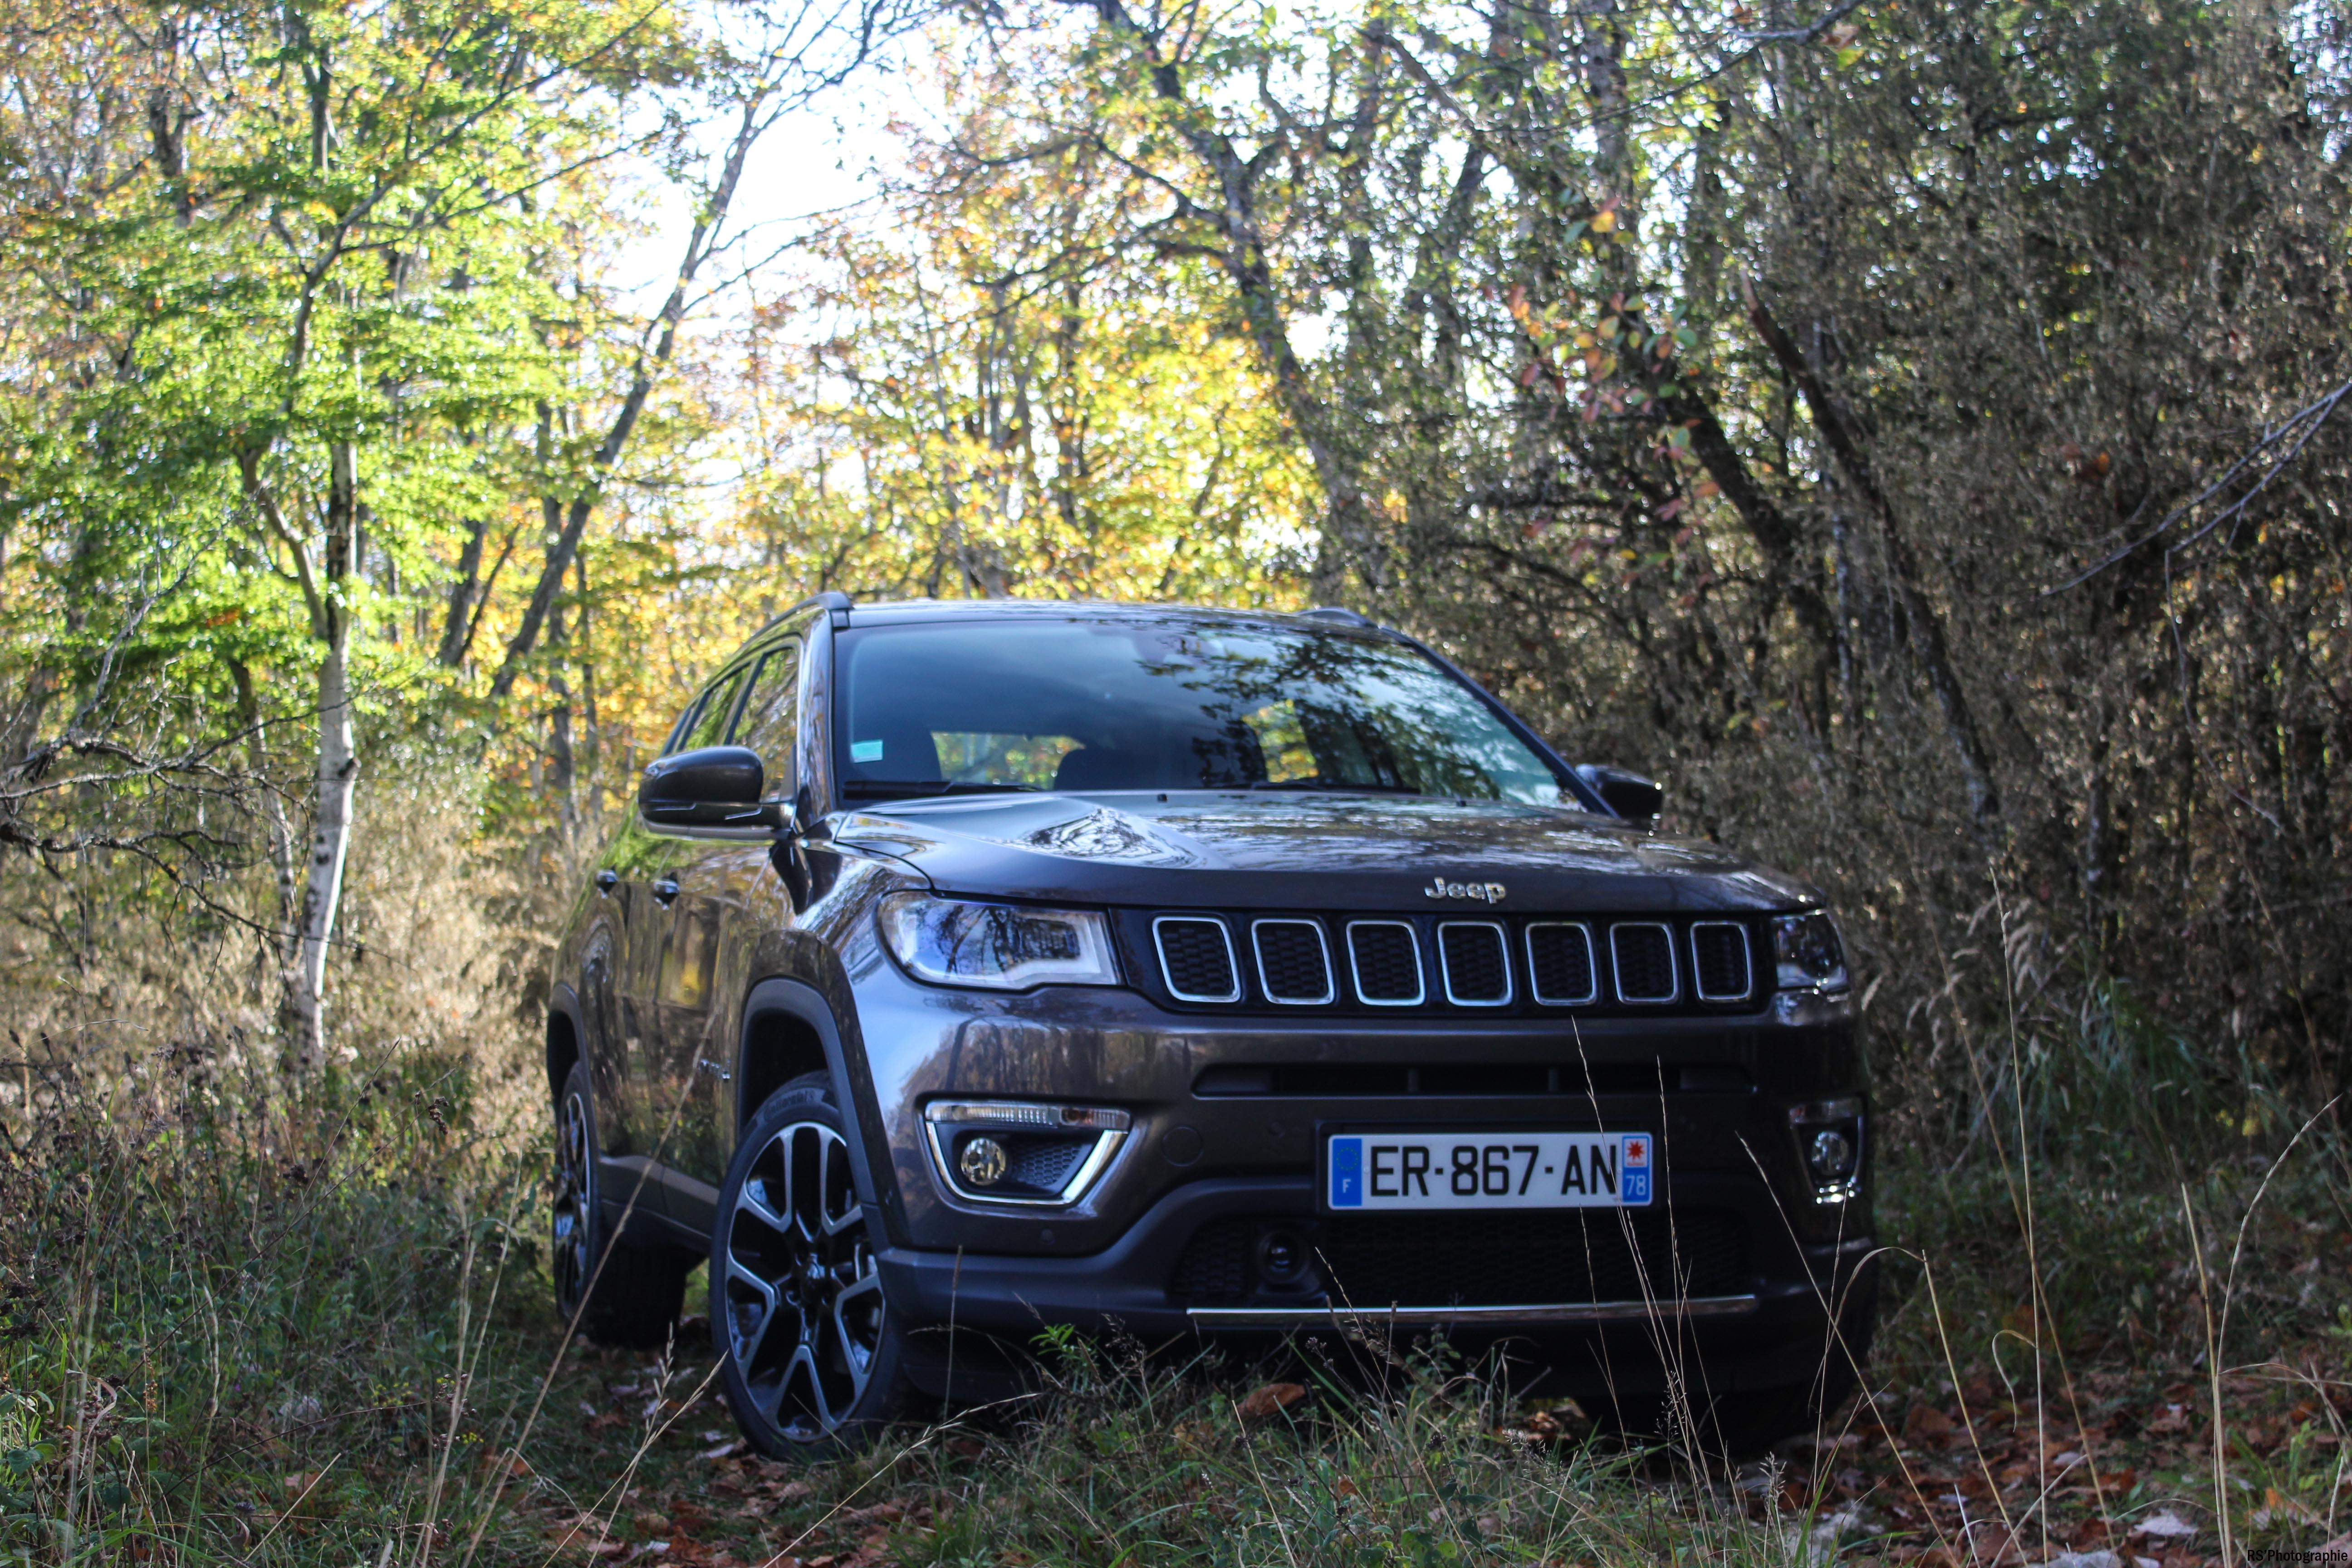 jeepcompass36-jeep-compass-avant-front-Arnaud Demasier-RSPhotographie